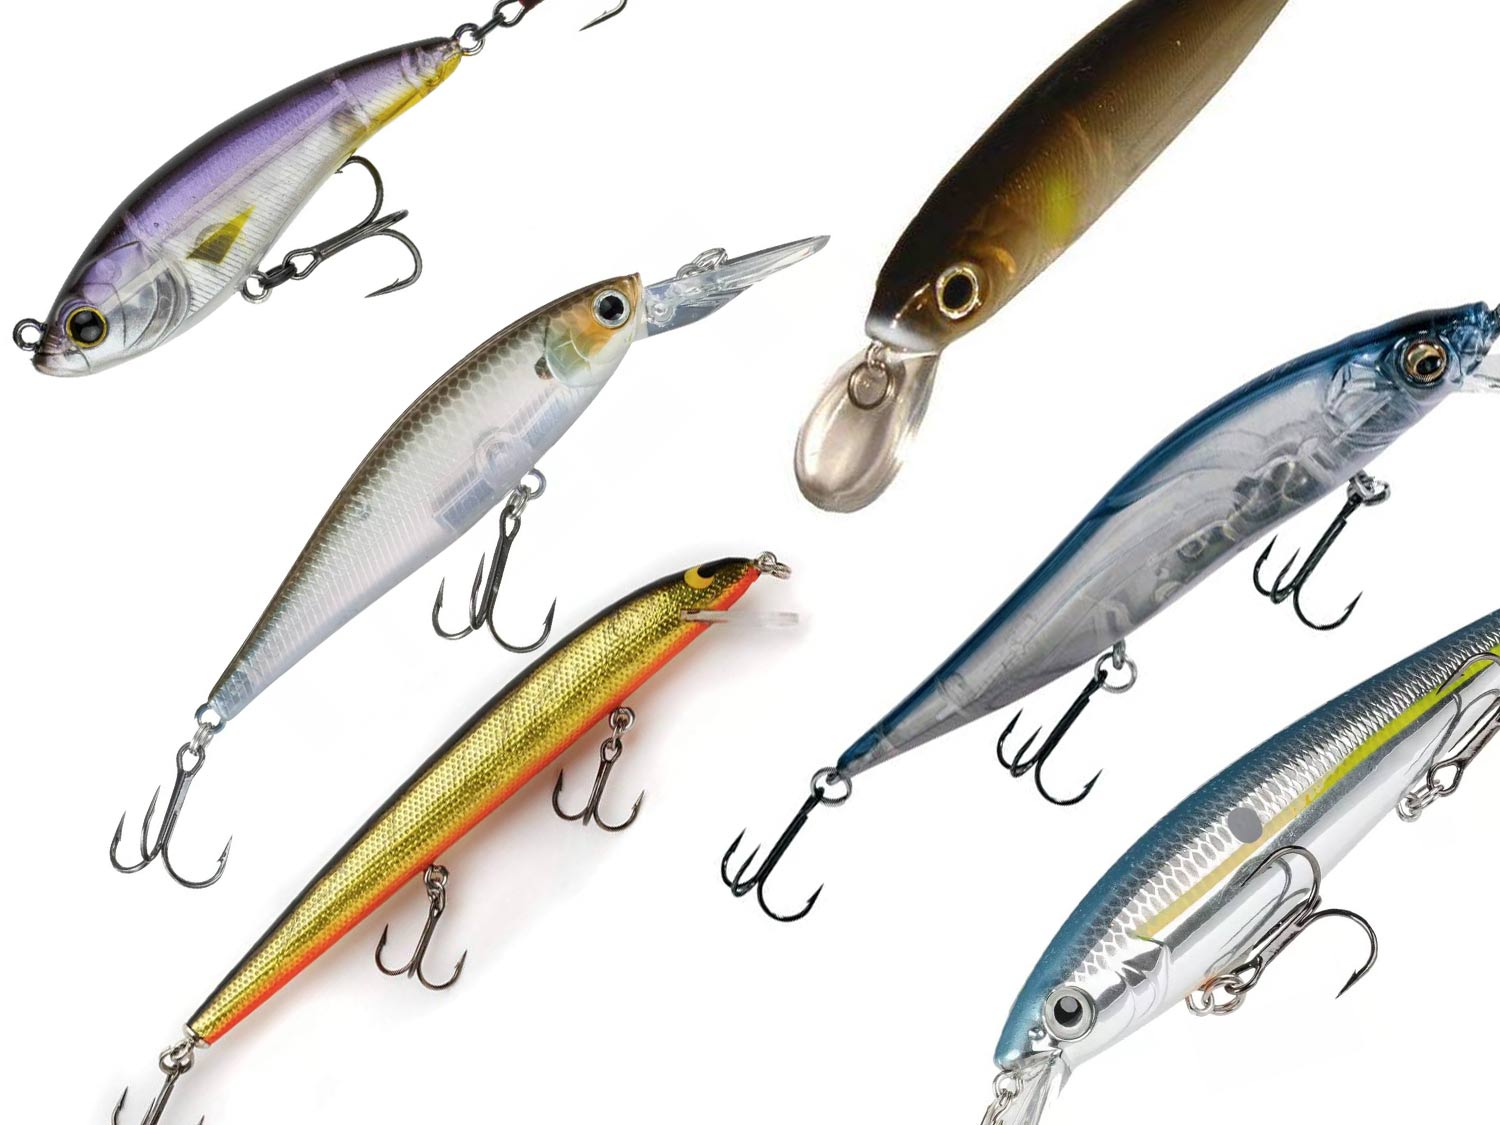 A collection of jerkbait fishing lures.